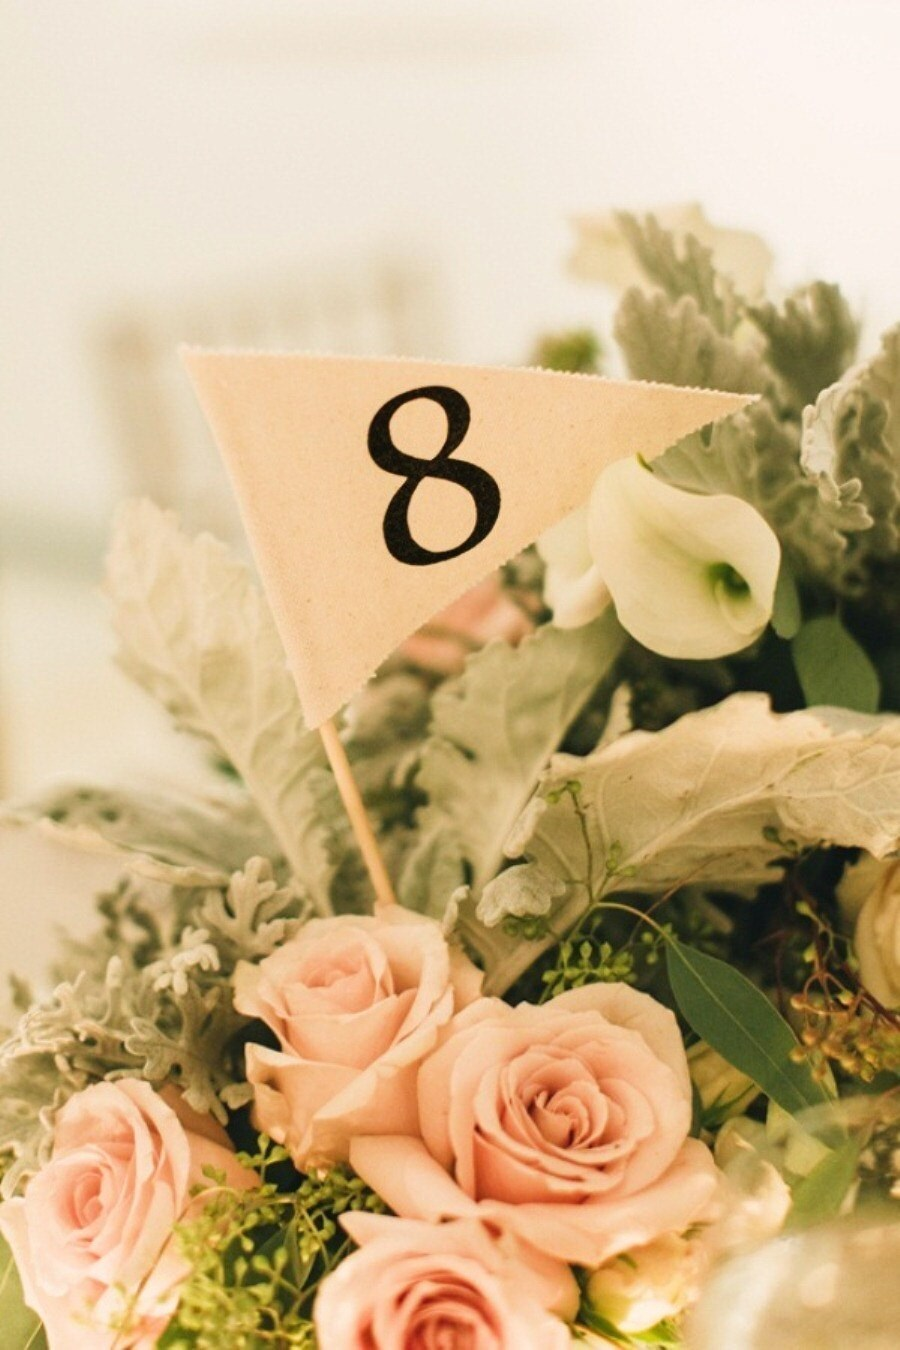 Pennant flag table number fabric flags with bamboo stick rustic pennant flag table number fabric flags with bamboo stick rustic country or simple wedding decor variety of colors junglespirit Choice Image